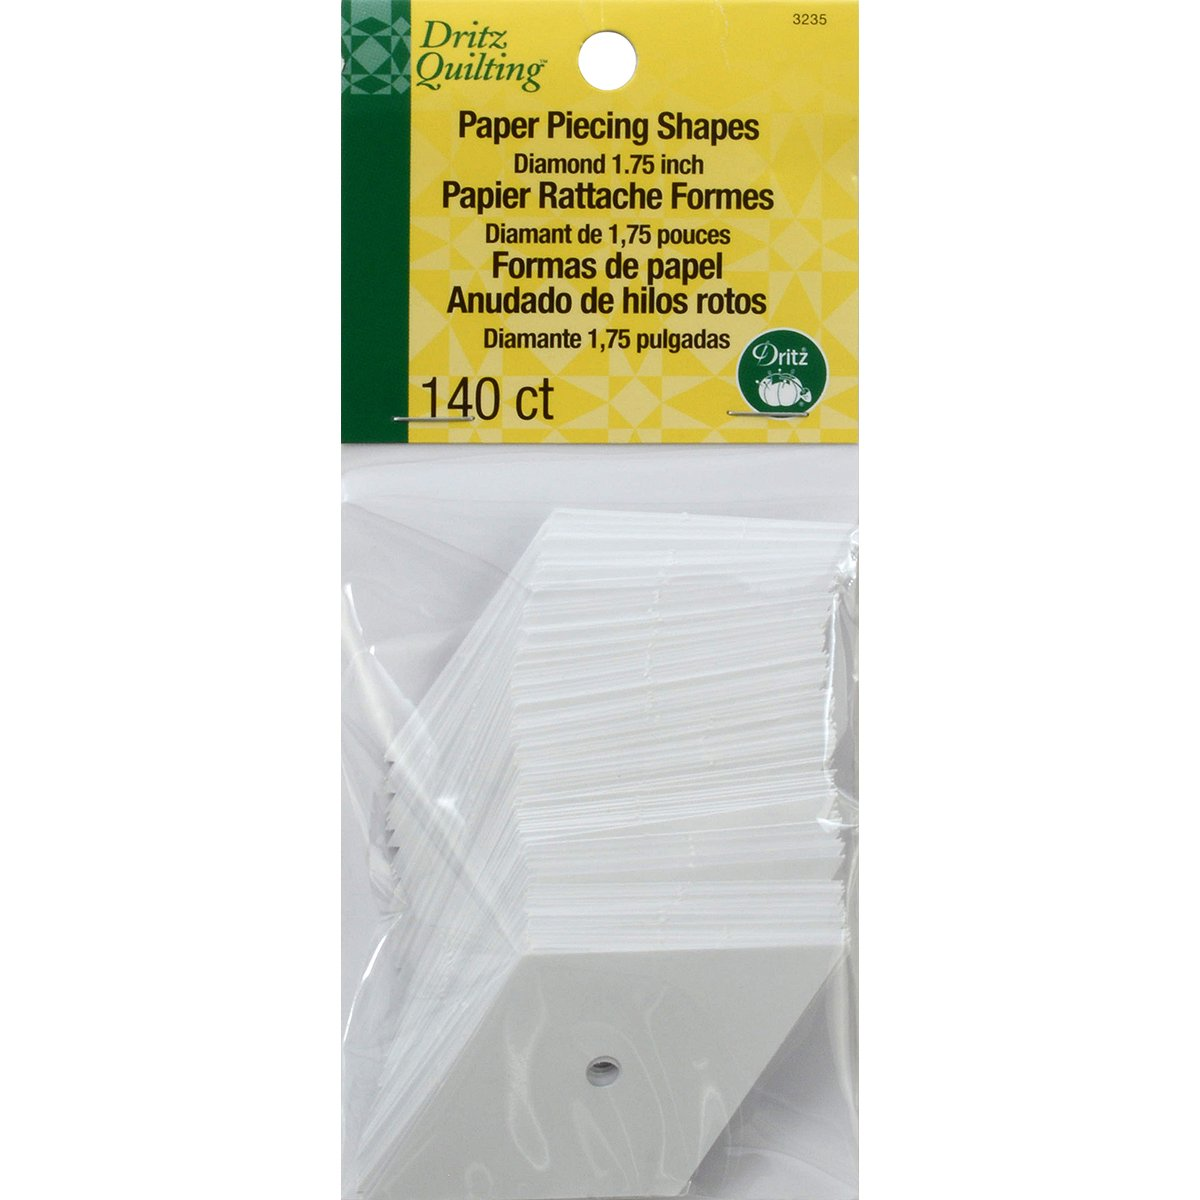 Dritz Quilting Paper Piecing 60 Degree Diamond-1.75-inch 140/Pkg 3235